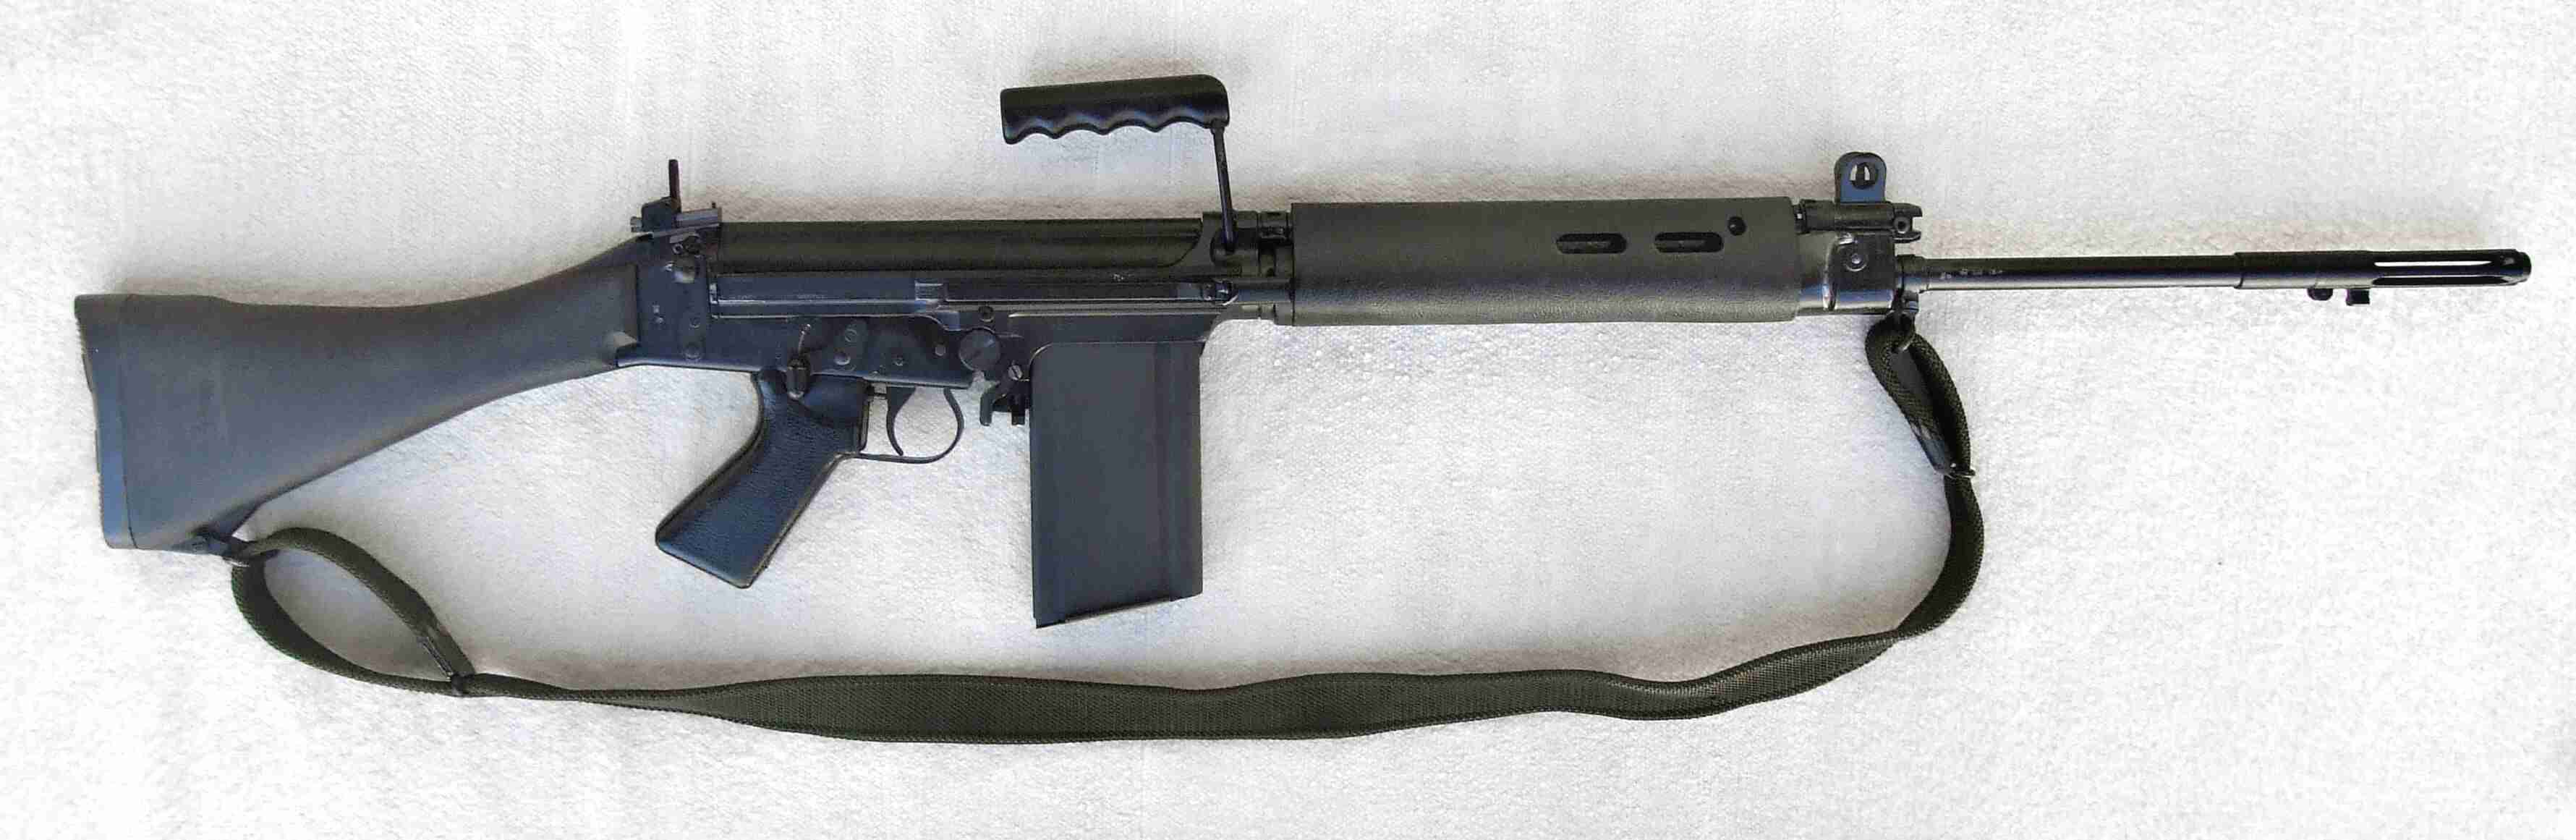 l1a1 for sale